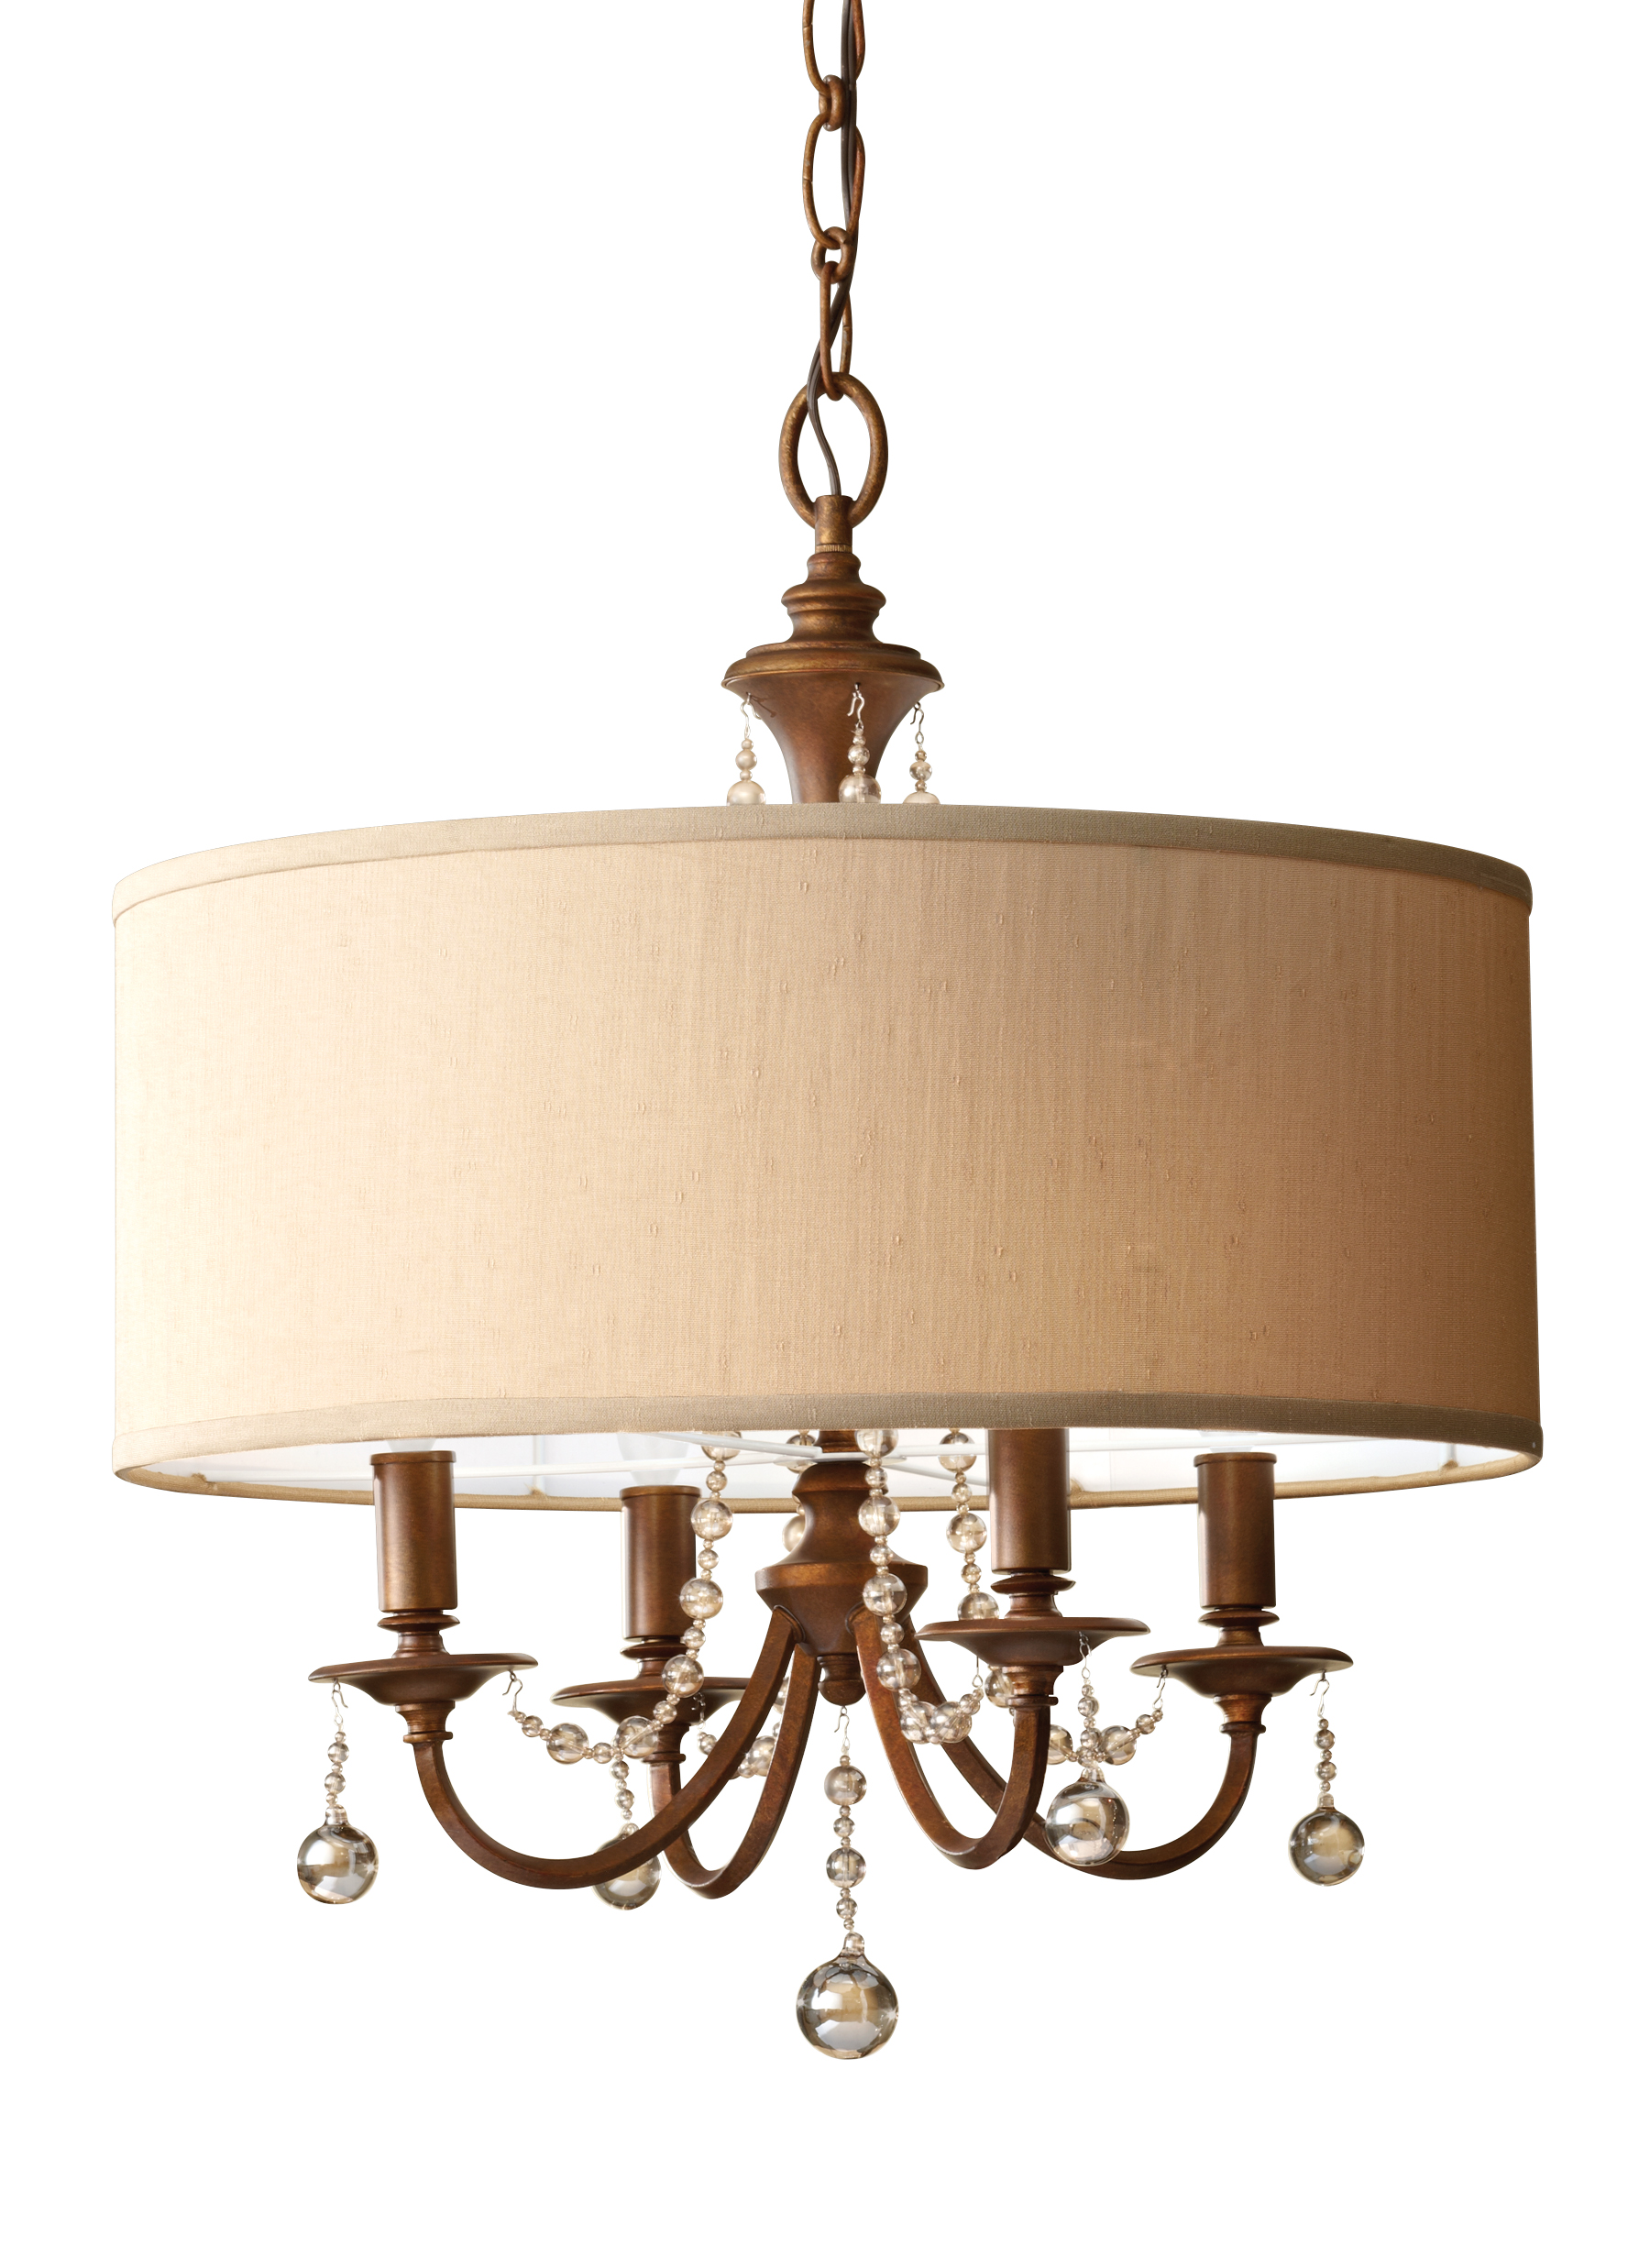 F27274fg4 light chandelierfirenze gold loading zoom mozeypictures Image collections